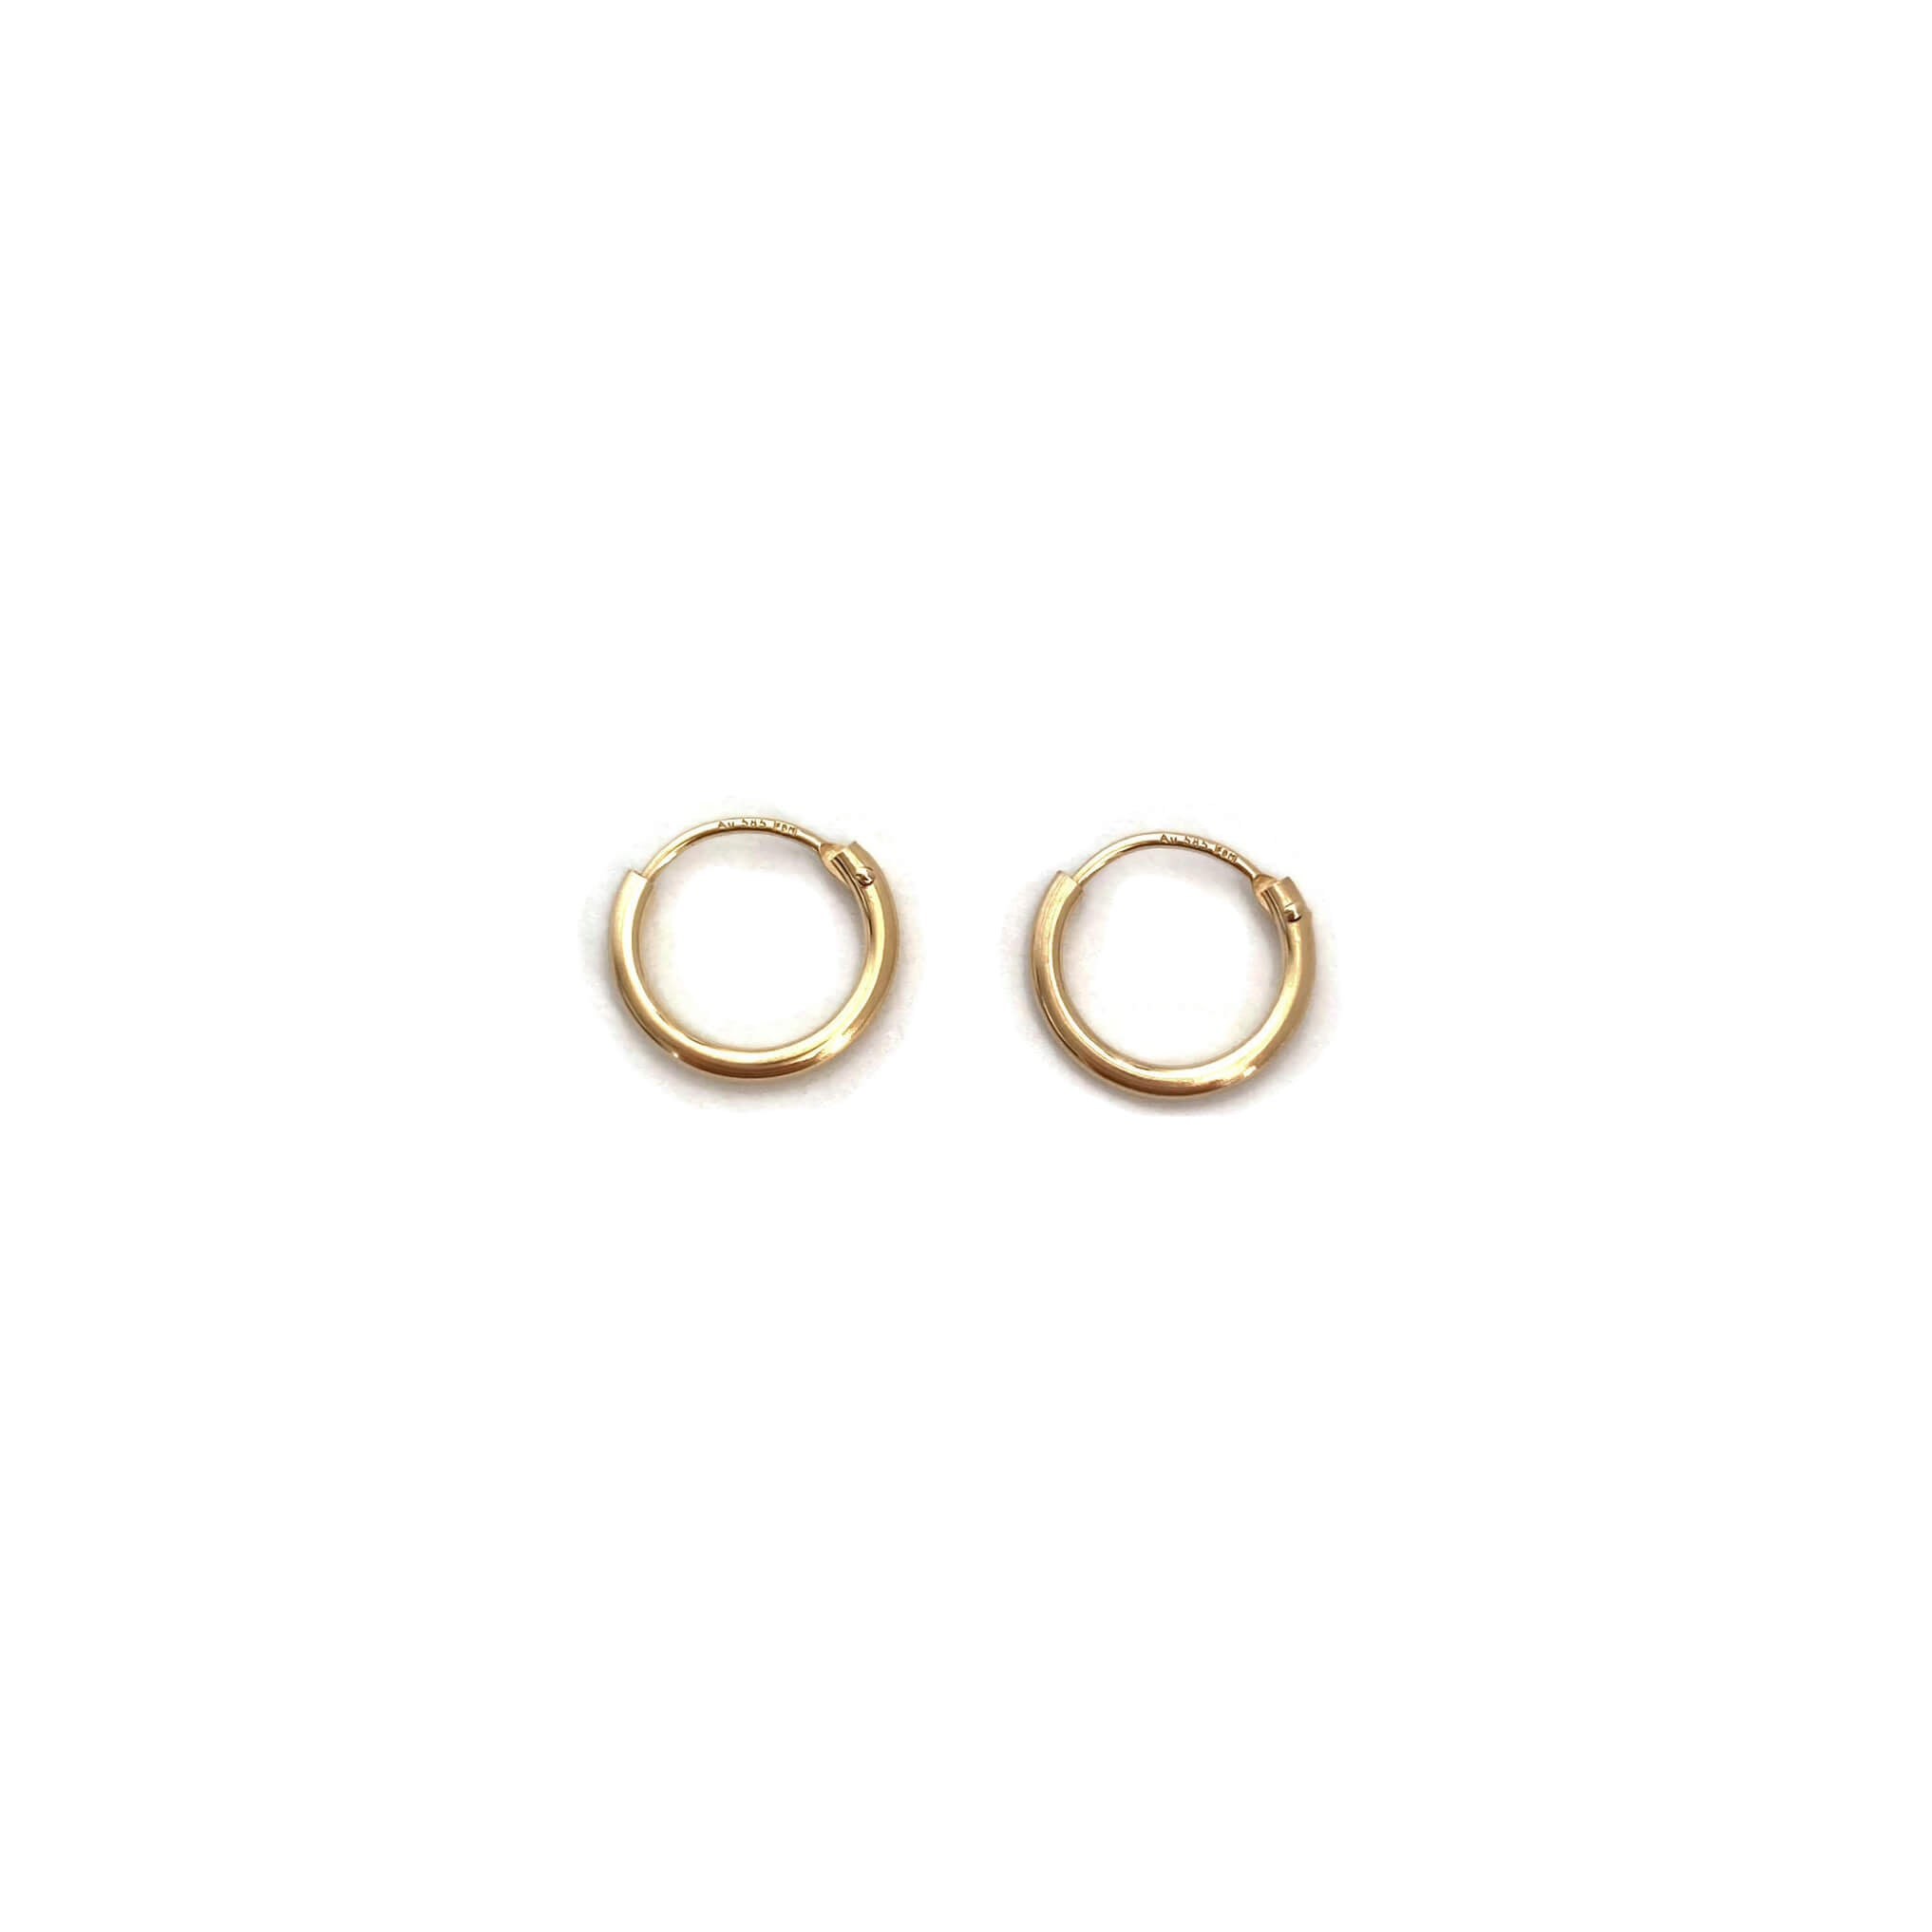 This is a pair of 10mm gold hoop earrings.  They are great 14k cartilage earrings that you can wear them 24/7